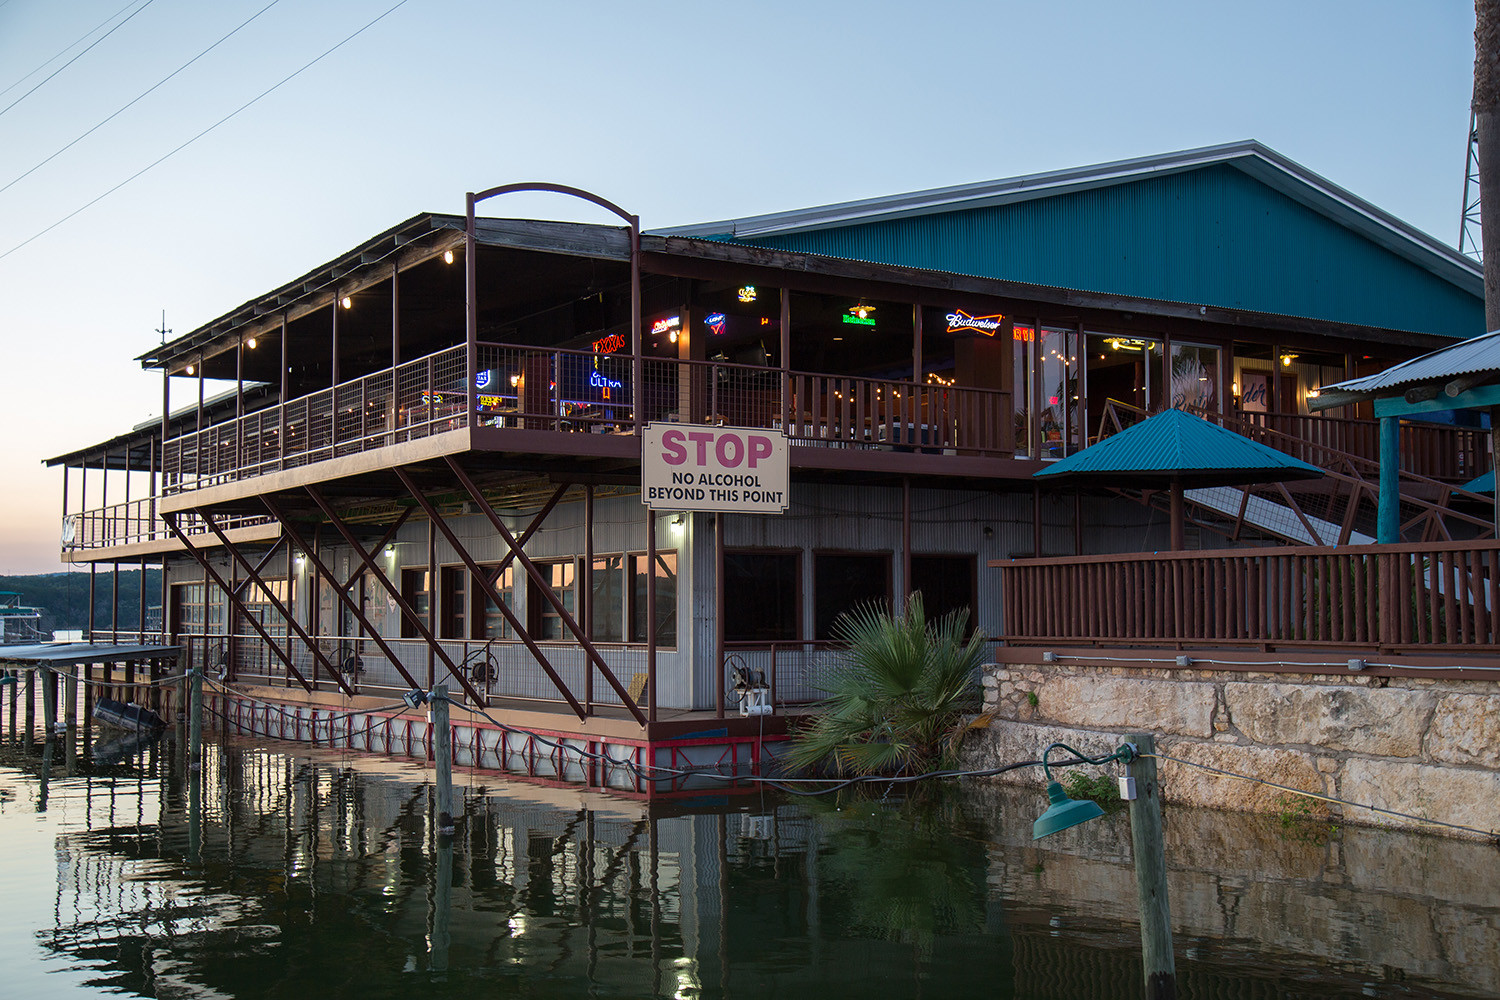 After Carlos N' Charlie's closed in September 2013 during the low lake levels, it later became Frog's at the Pond in 2015, and The Rusty Rudder in 2016 before rebranding as Ernie's on the Lake. The building has been a mainstay for lake visitors.